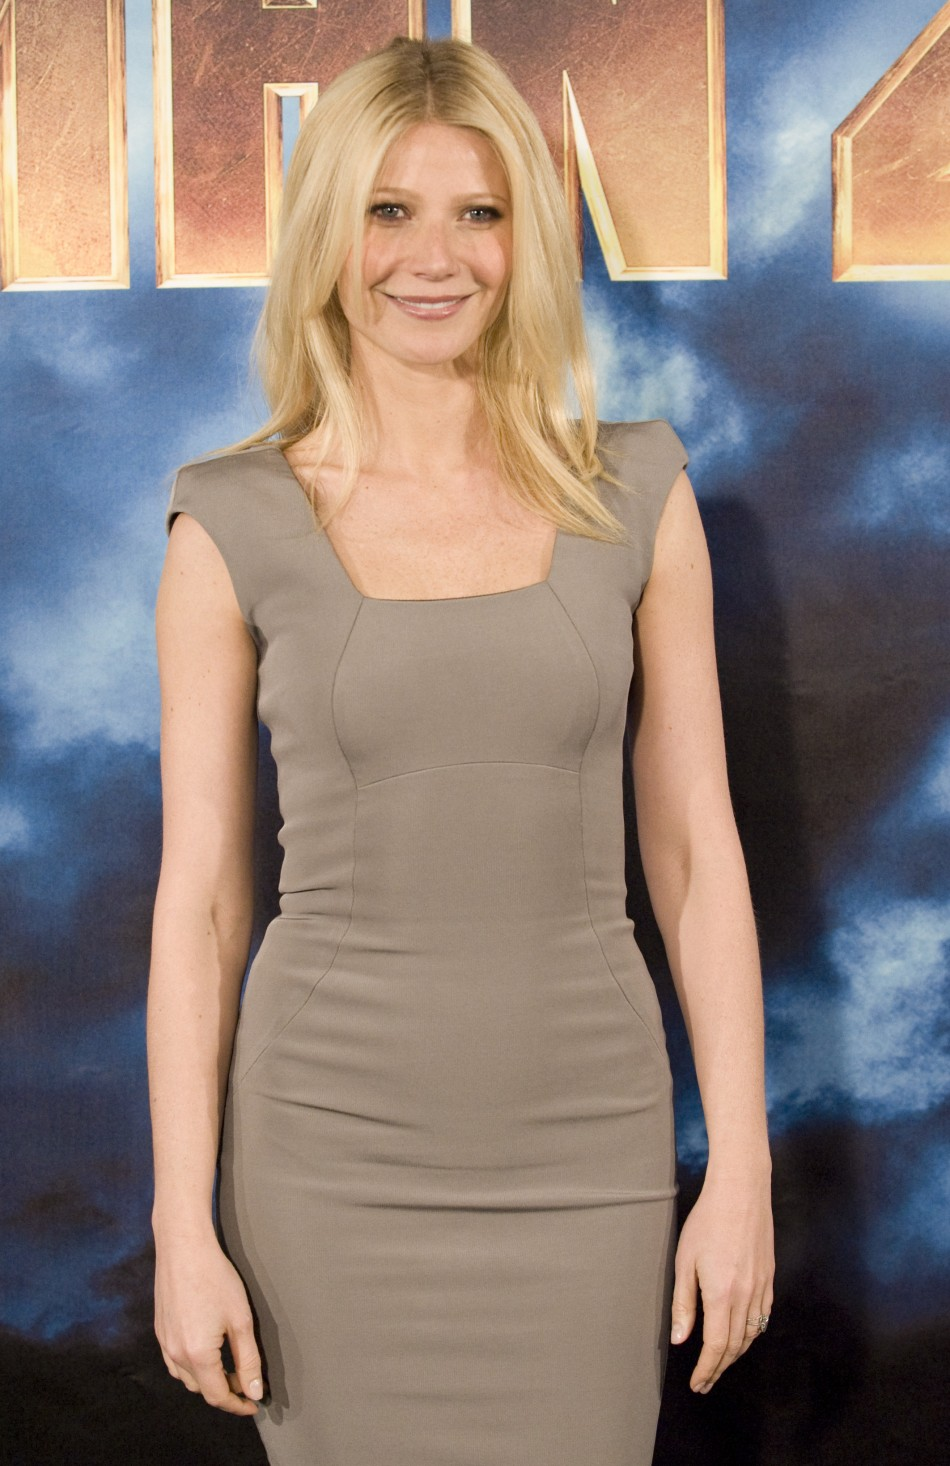 Actress Gwyneth Paltrow poses for Reuters for the movie Iron Man 2 in Los Angeles, California.